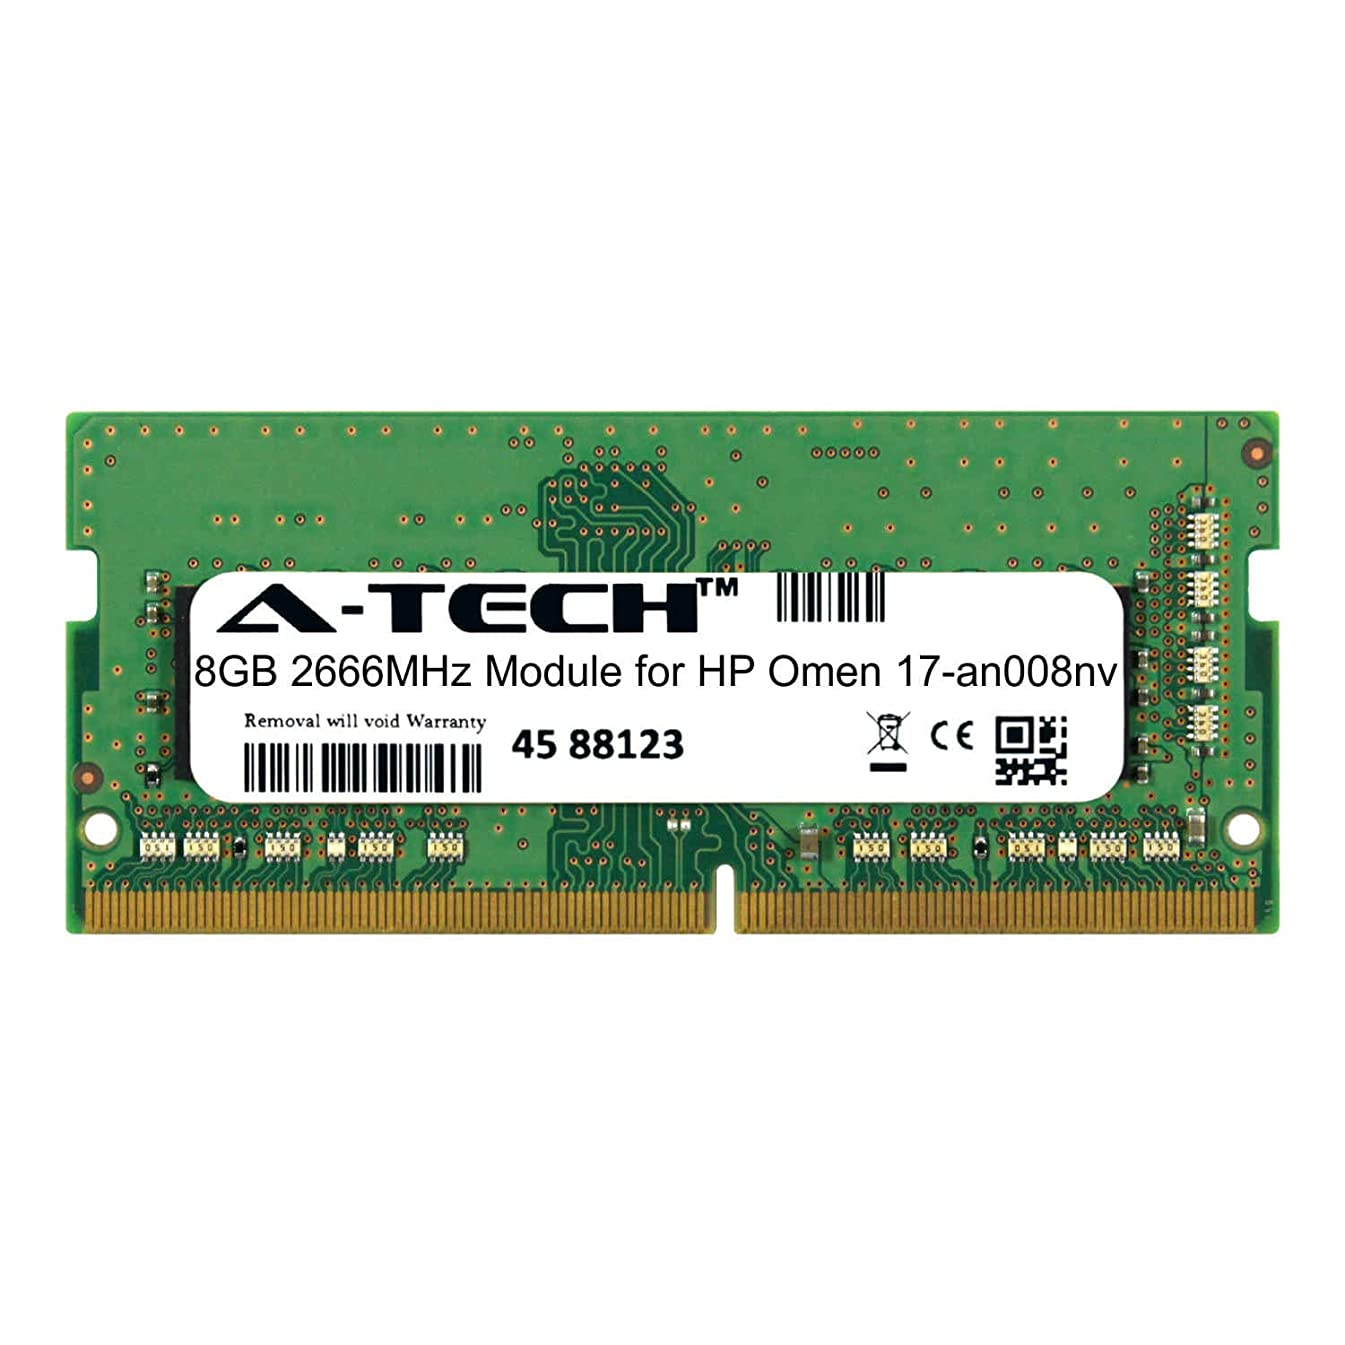 A-Tech 8GB Module for HP Omen 17-an008nv Laptop & Notebook Compatible DDR4 2666Mhz Memory Ram (ATMS280865A25978X1)